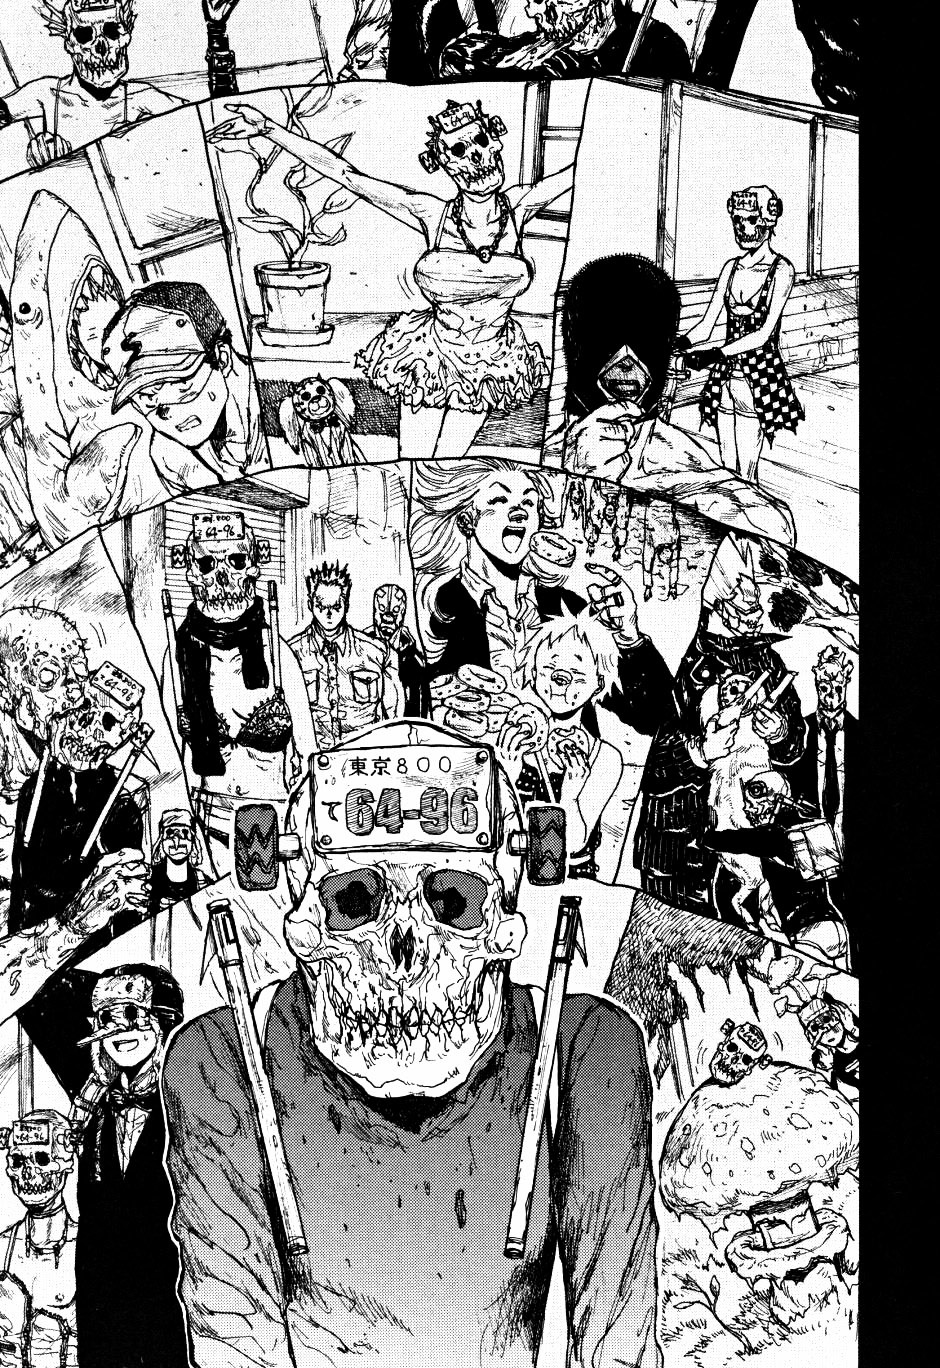 Dorohedoro Vol.10 Chapter 57 Good Company Is The Best